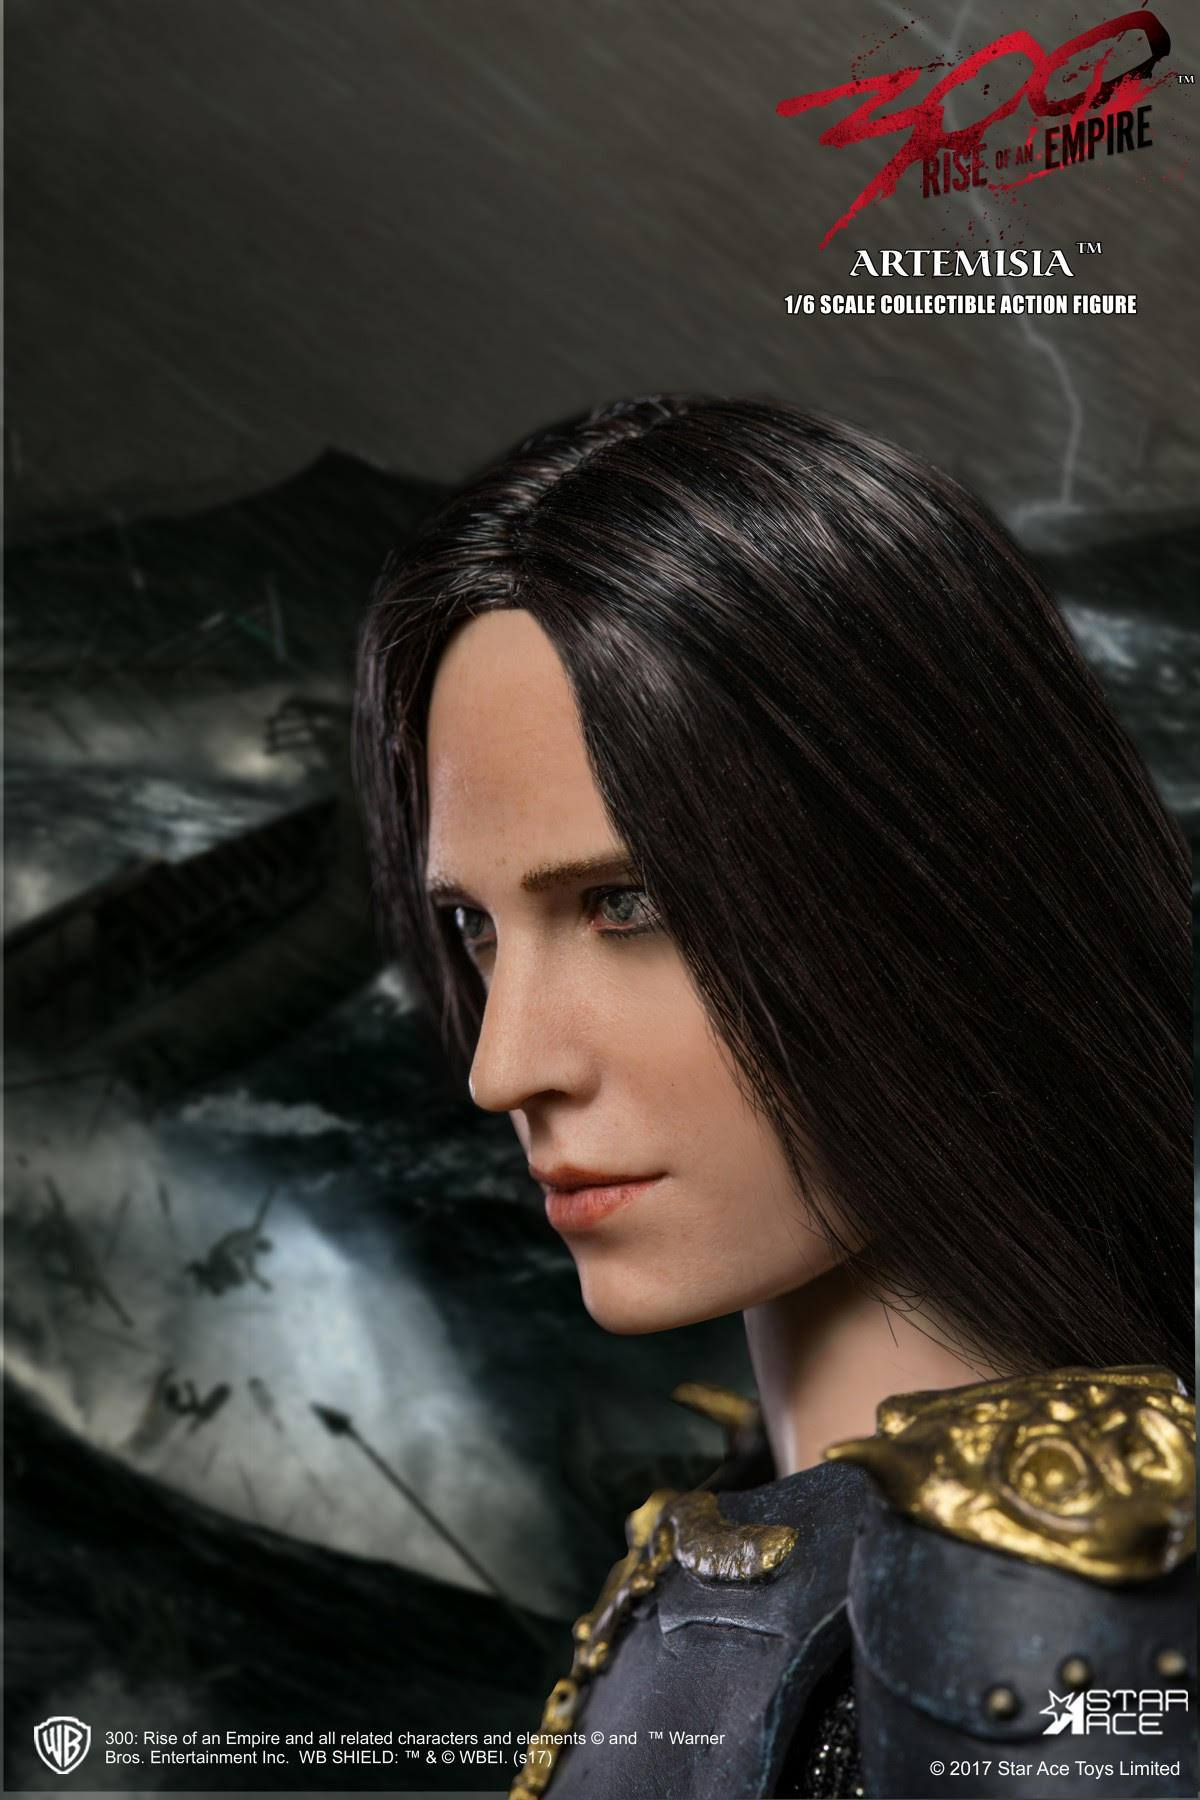 Star Ace Toys - 300: Rise of an Ampire - General Artemisia 2.0 (1/6 Scale)